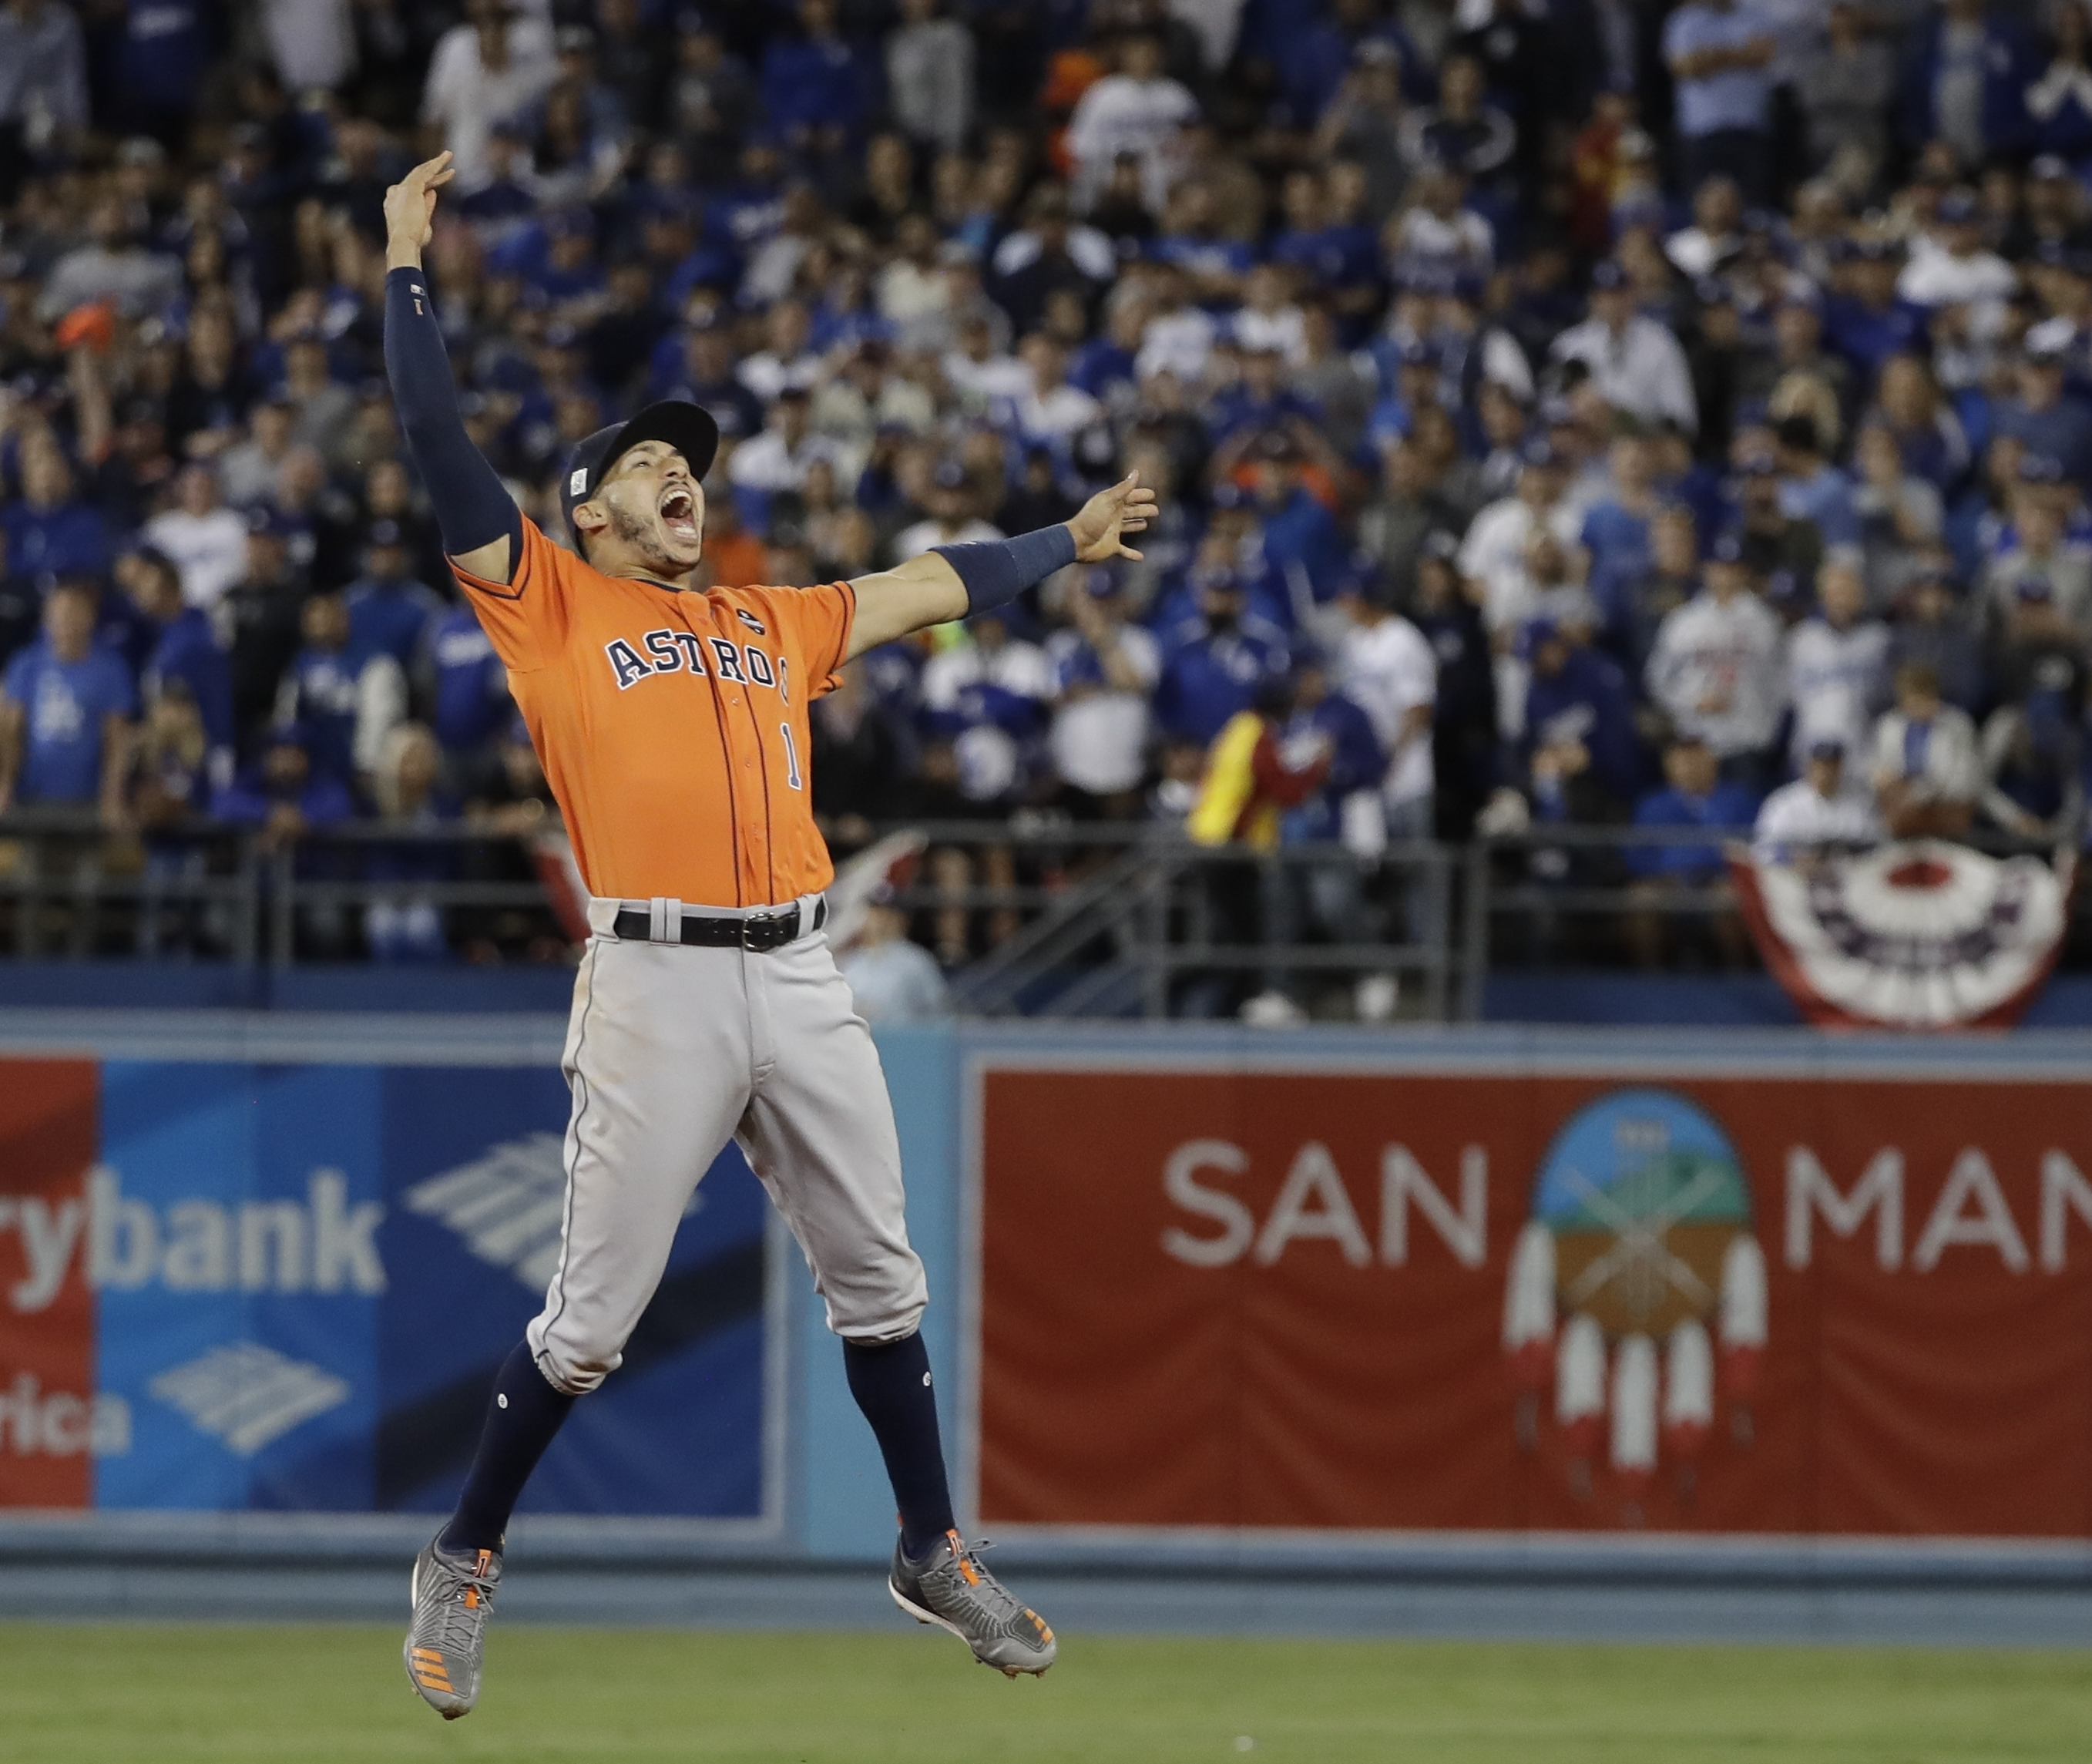 Houston Astros' Carlos Correa celebrates after Game 7 of the World Series against the Los Angeles Dodgers Wednesday, Nov. 1, 2017, in Los Angeles. (AP Photo/David J. Phillip)